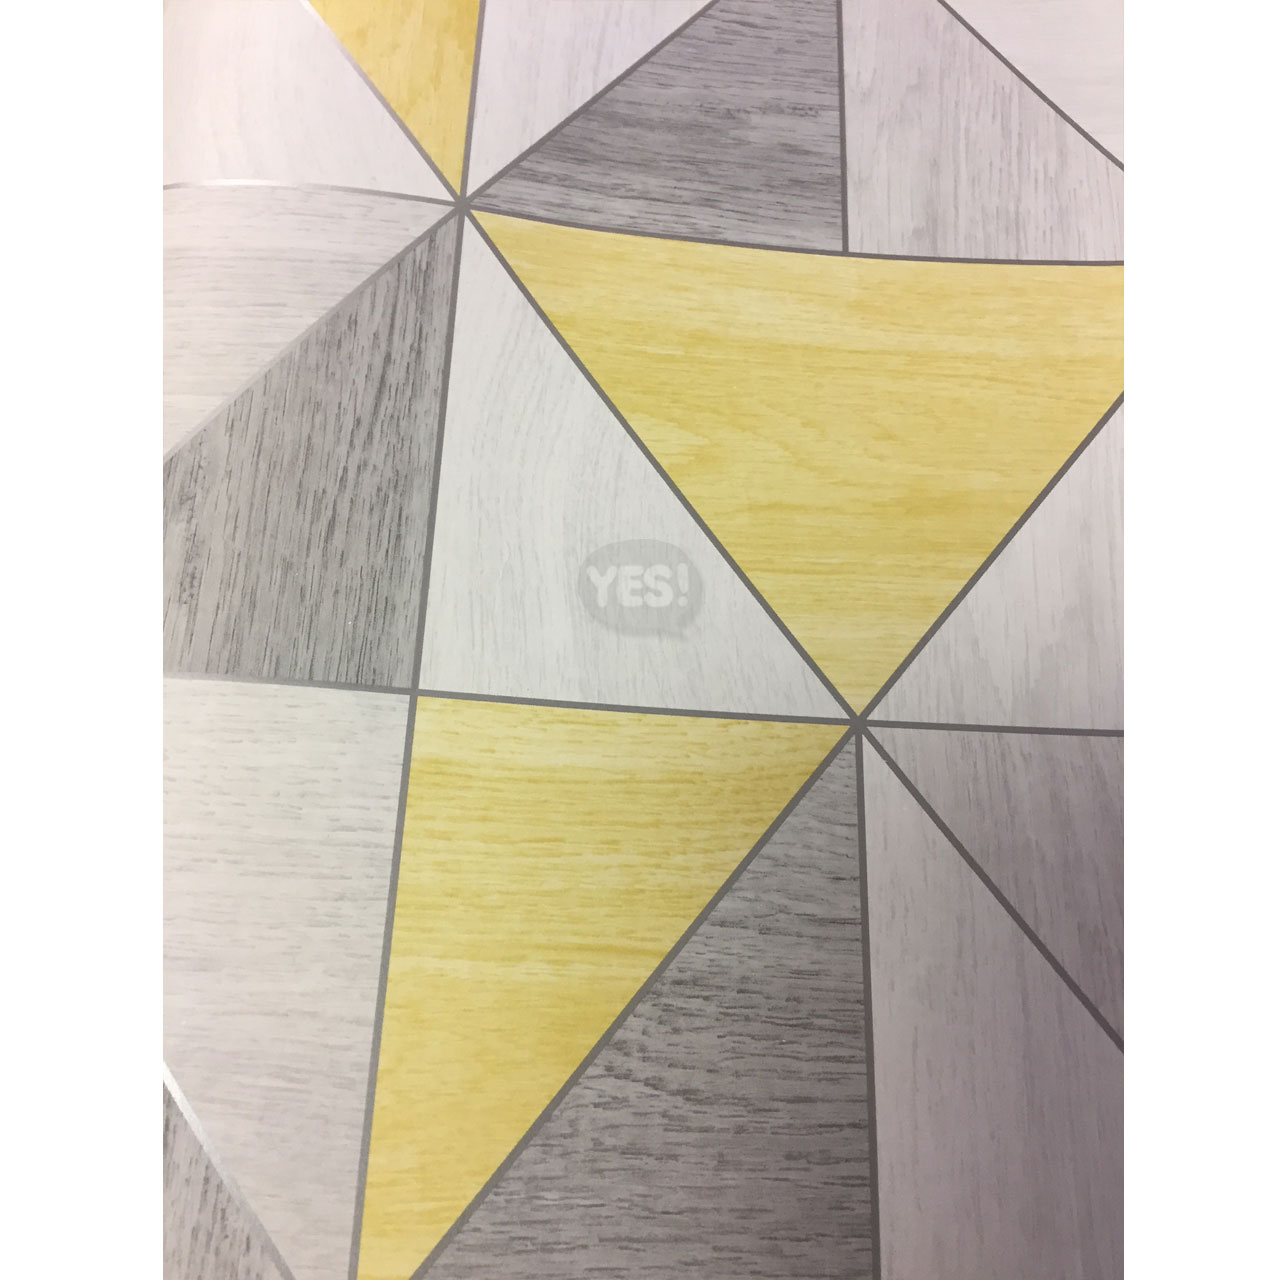 20d37c2fc17 Details about Wood Apex Wallpaper Geometric Luxury Metallic Yellow Grey  Silver Fine Decor